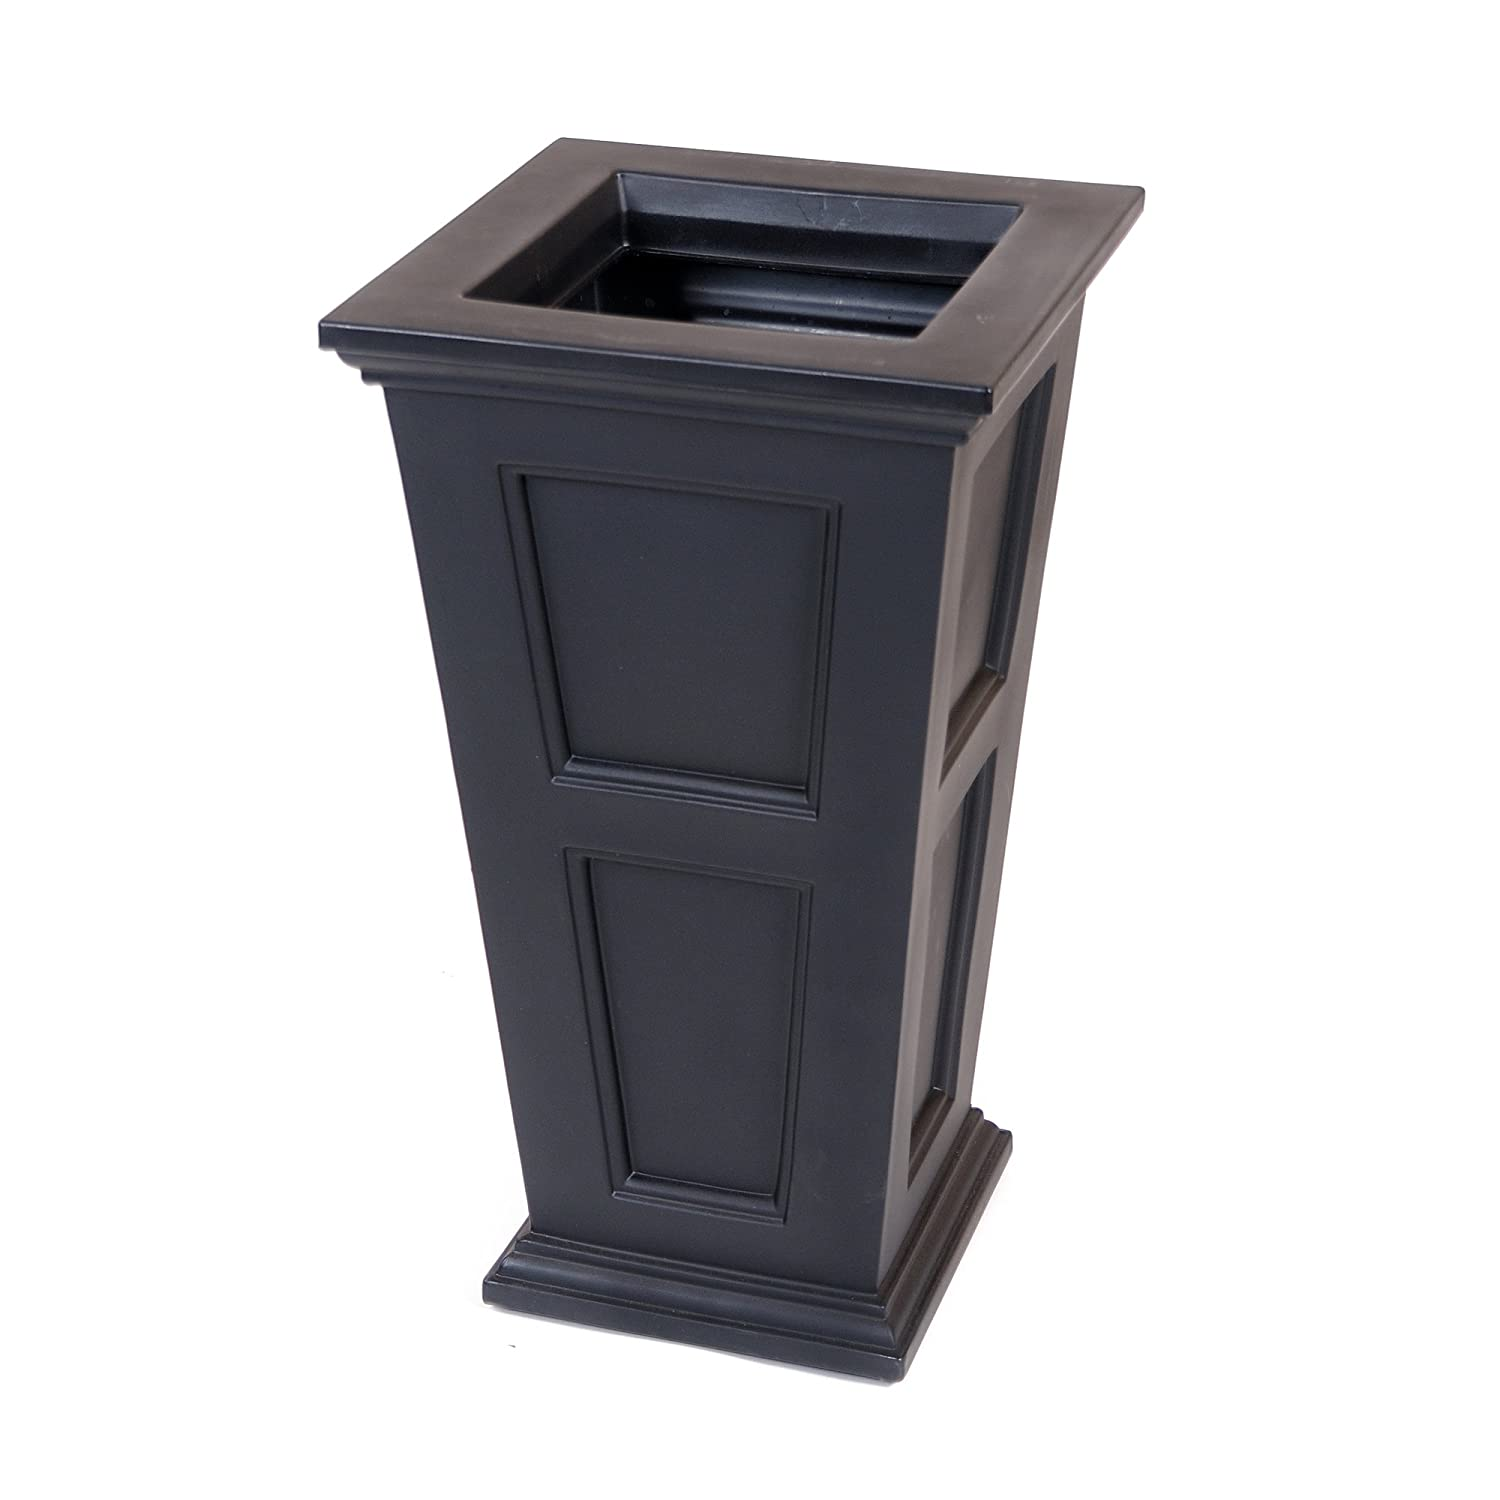 Amazon.com : Mayne Fairfield 5829B Tall Planter, 28 Inch By 16 Inch By  16 Inch, Black : Garden U0026 Outdoor